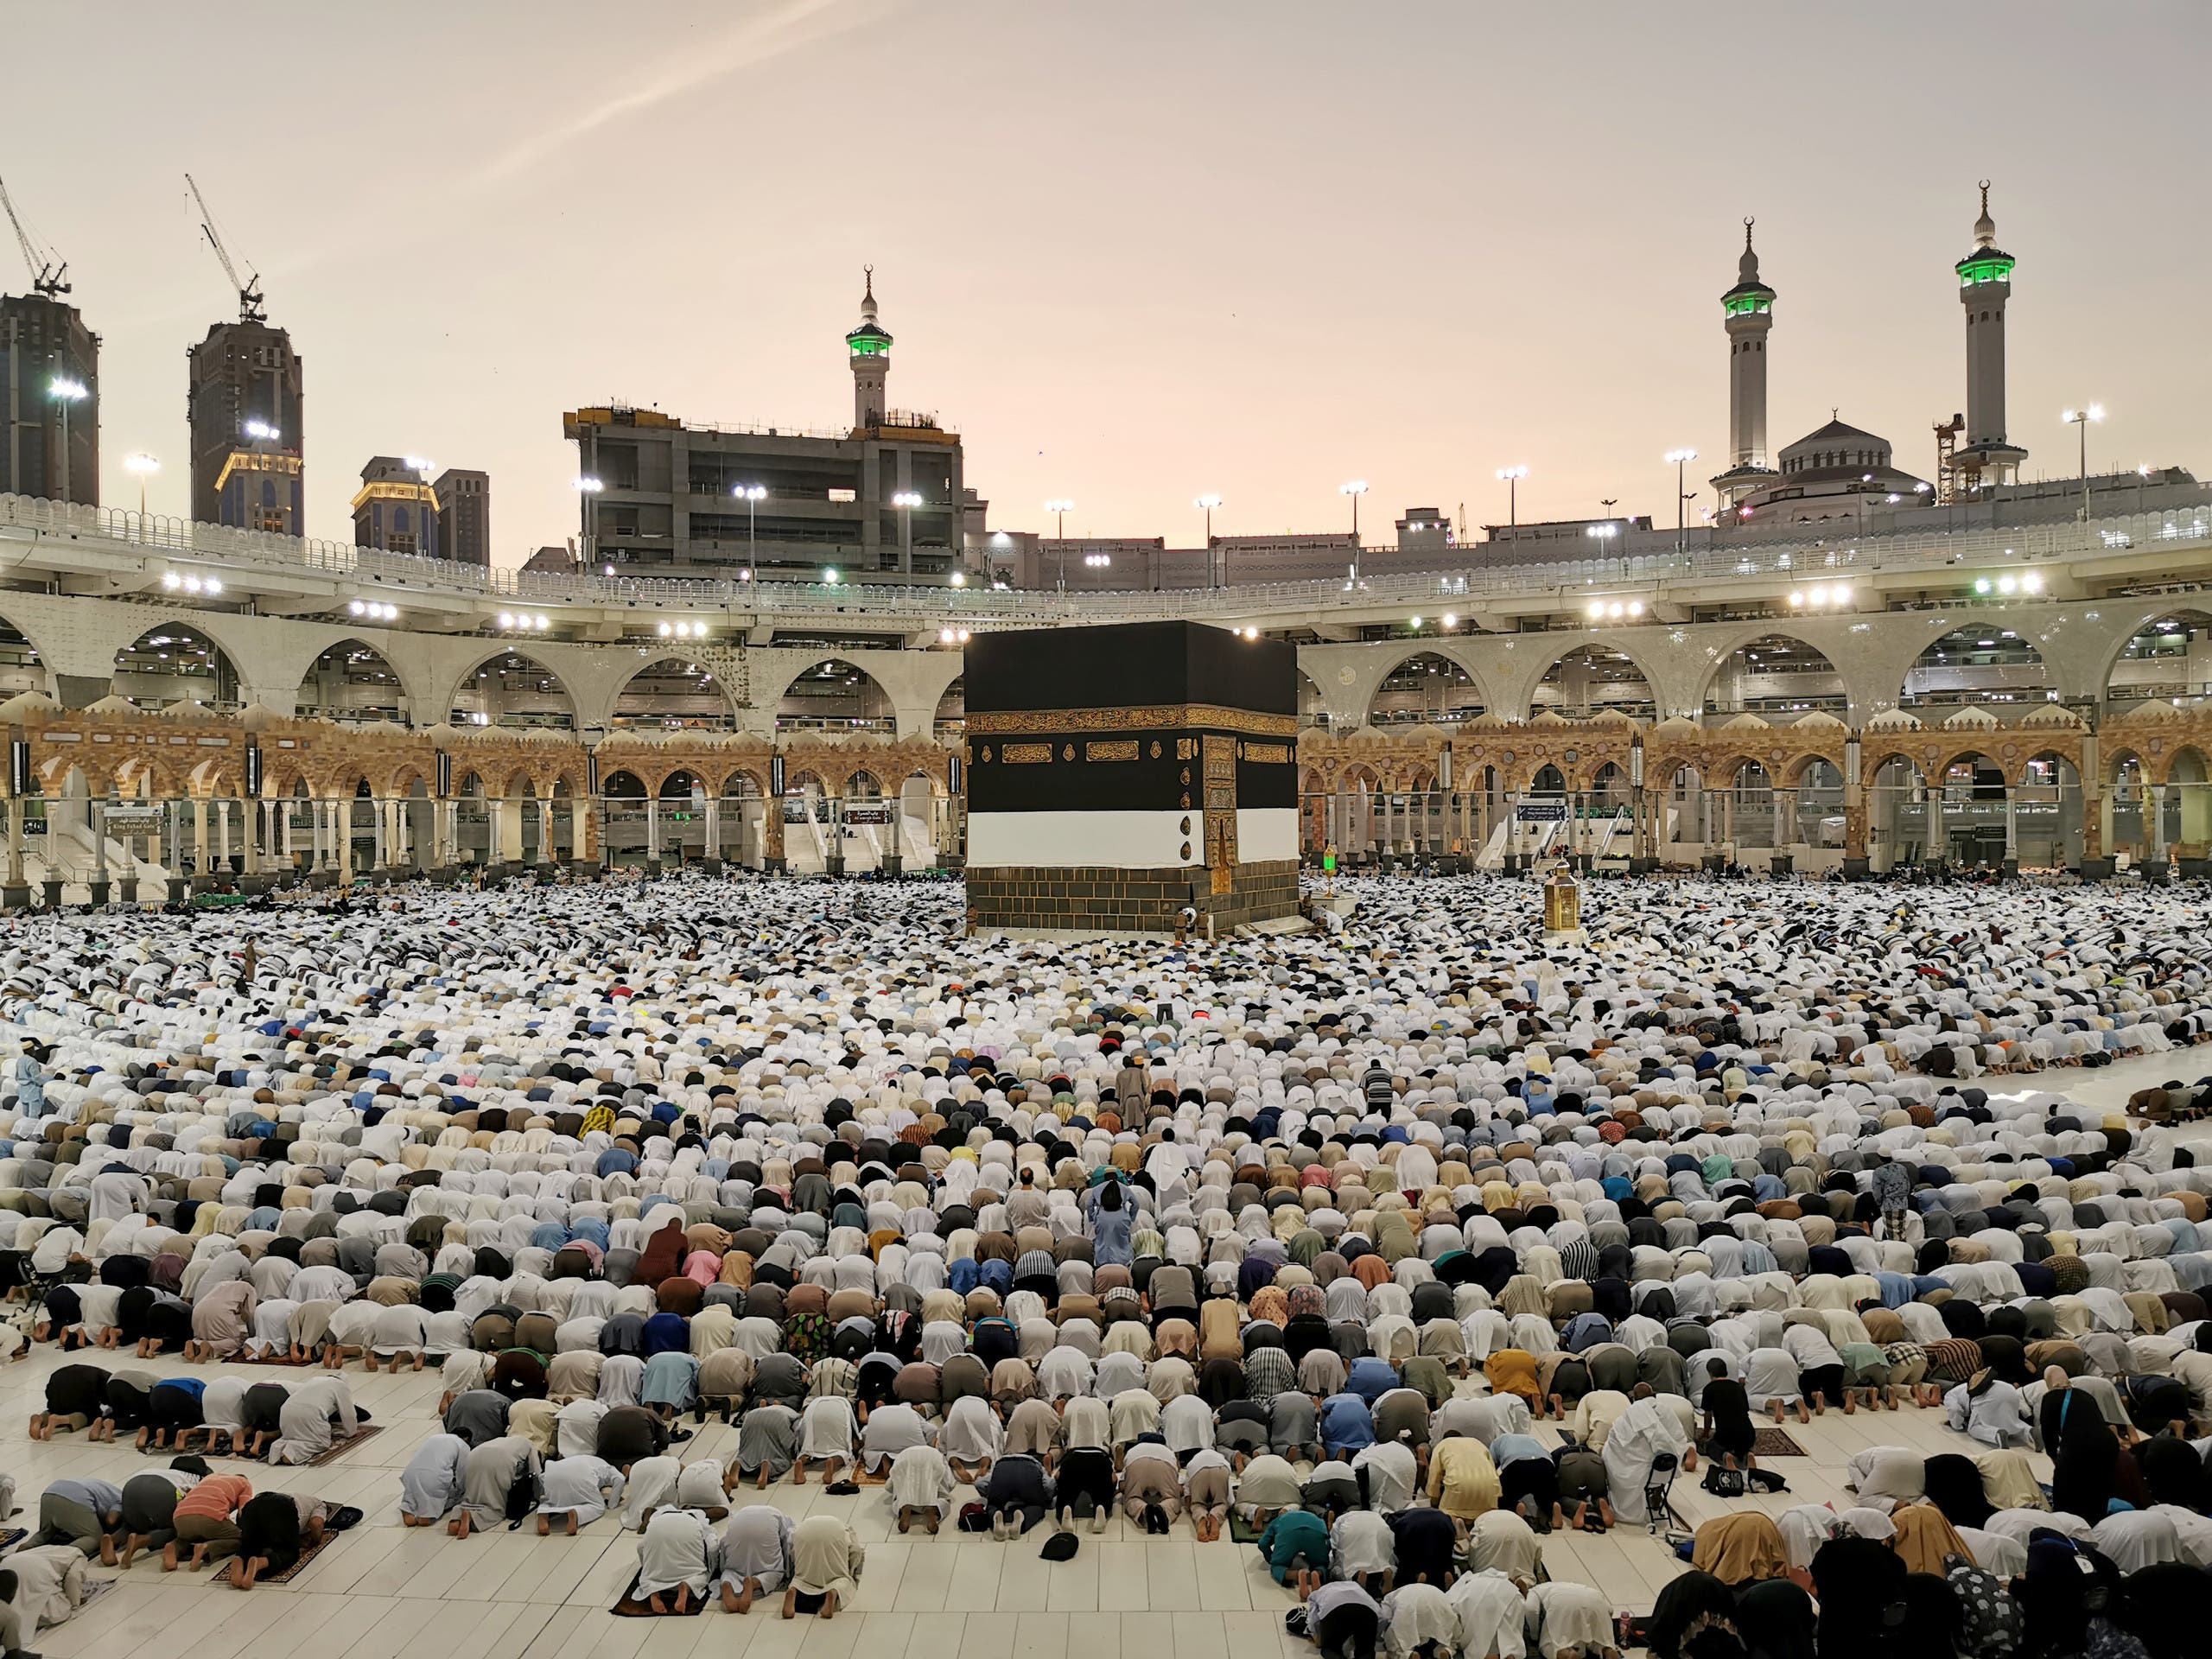 Muslims pray at the Grand Mosque during the annual Hajj pilgrimage in their holy city of Mecca, Saudi Arabia on August 8, 2019. (Reuters)